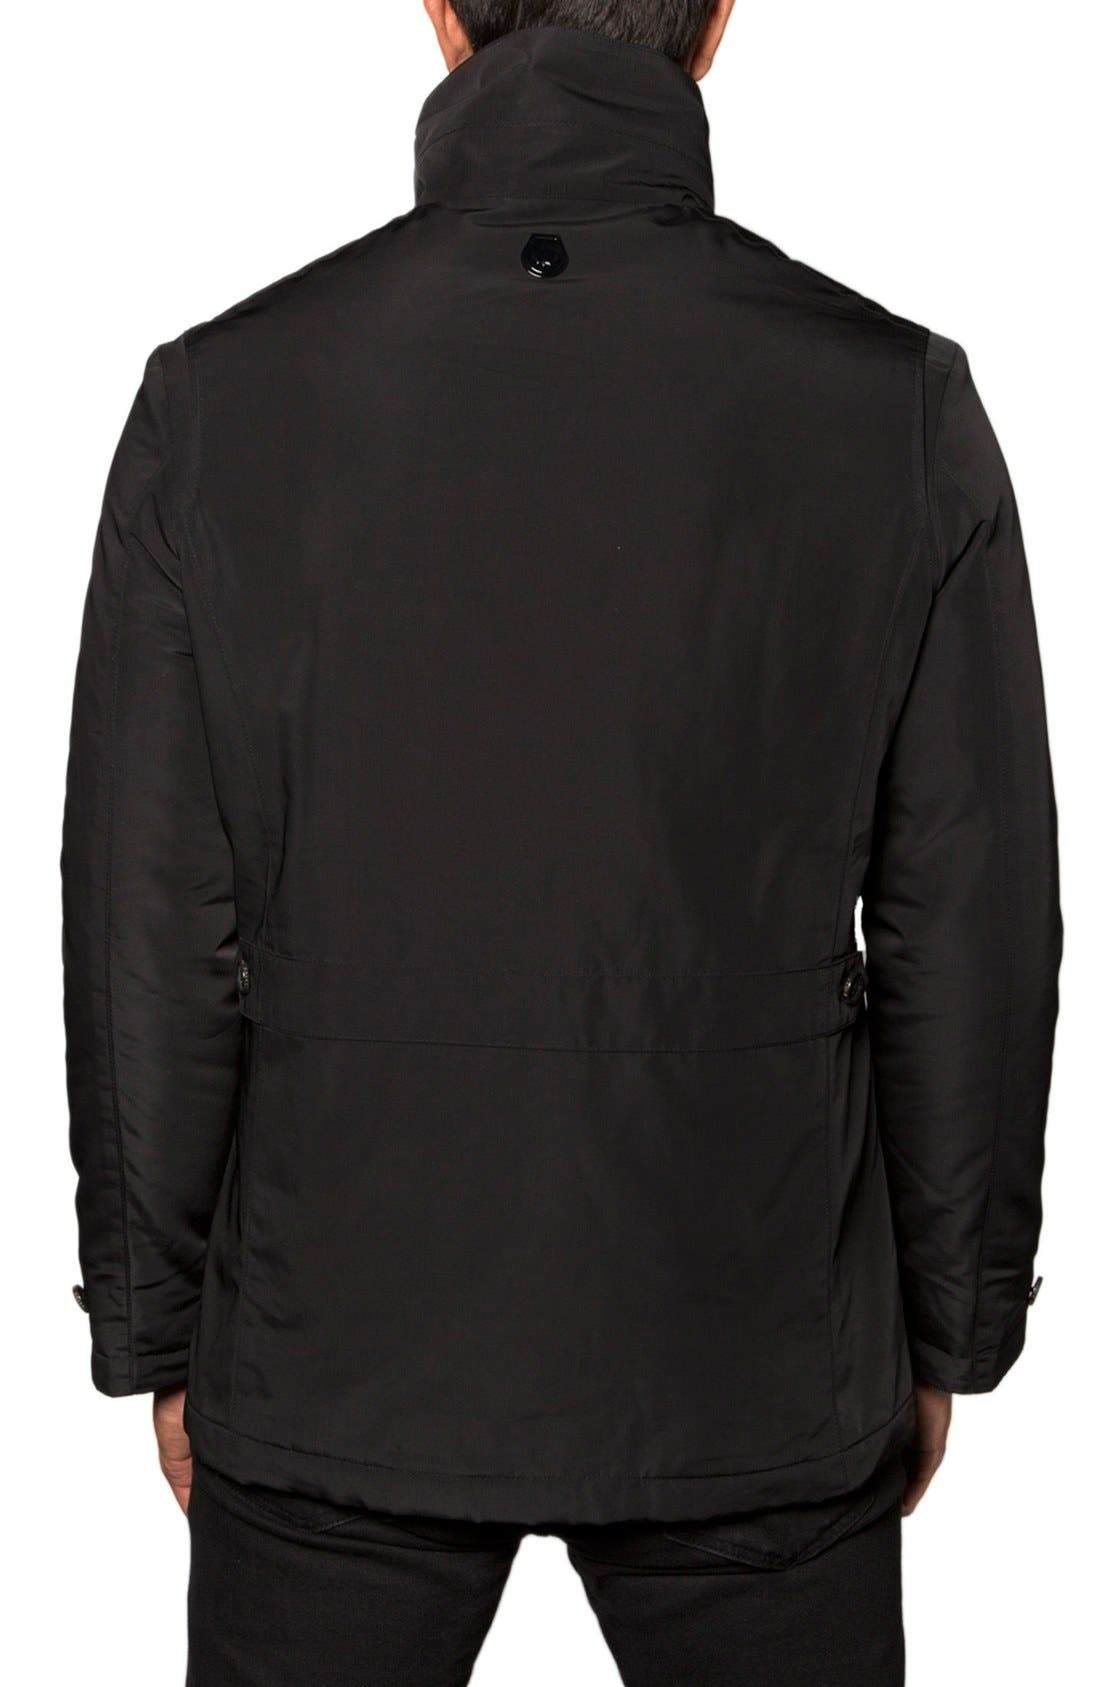 Alternate Image 2  - Jared Lang Rome Insulated Jacket